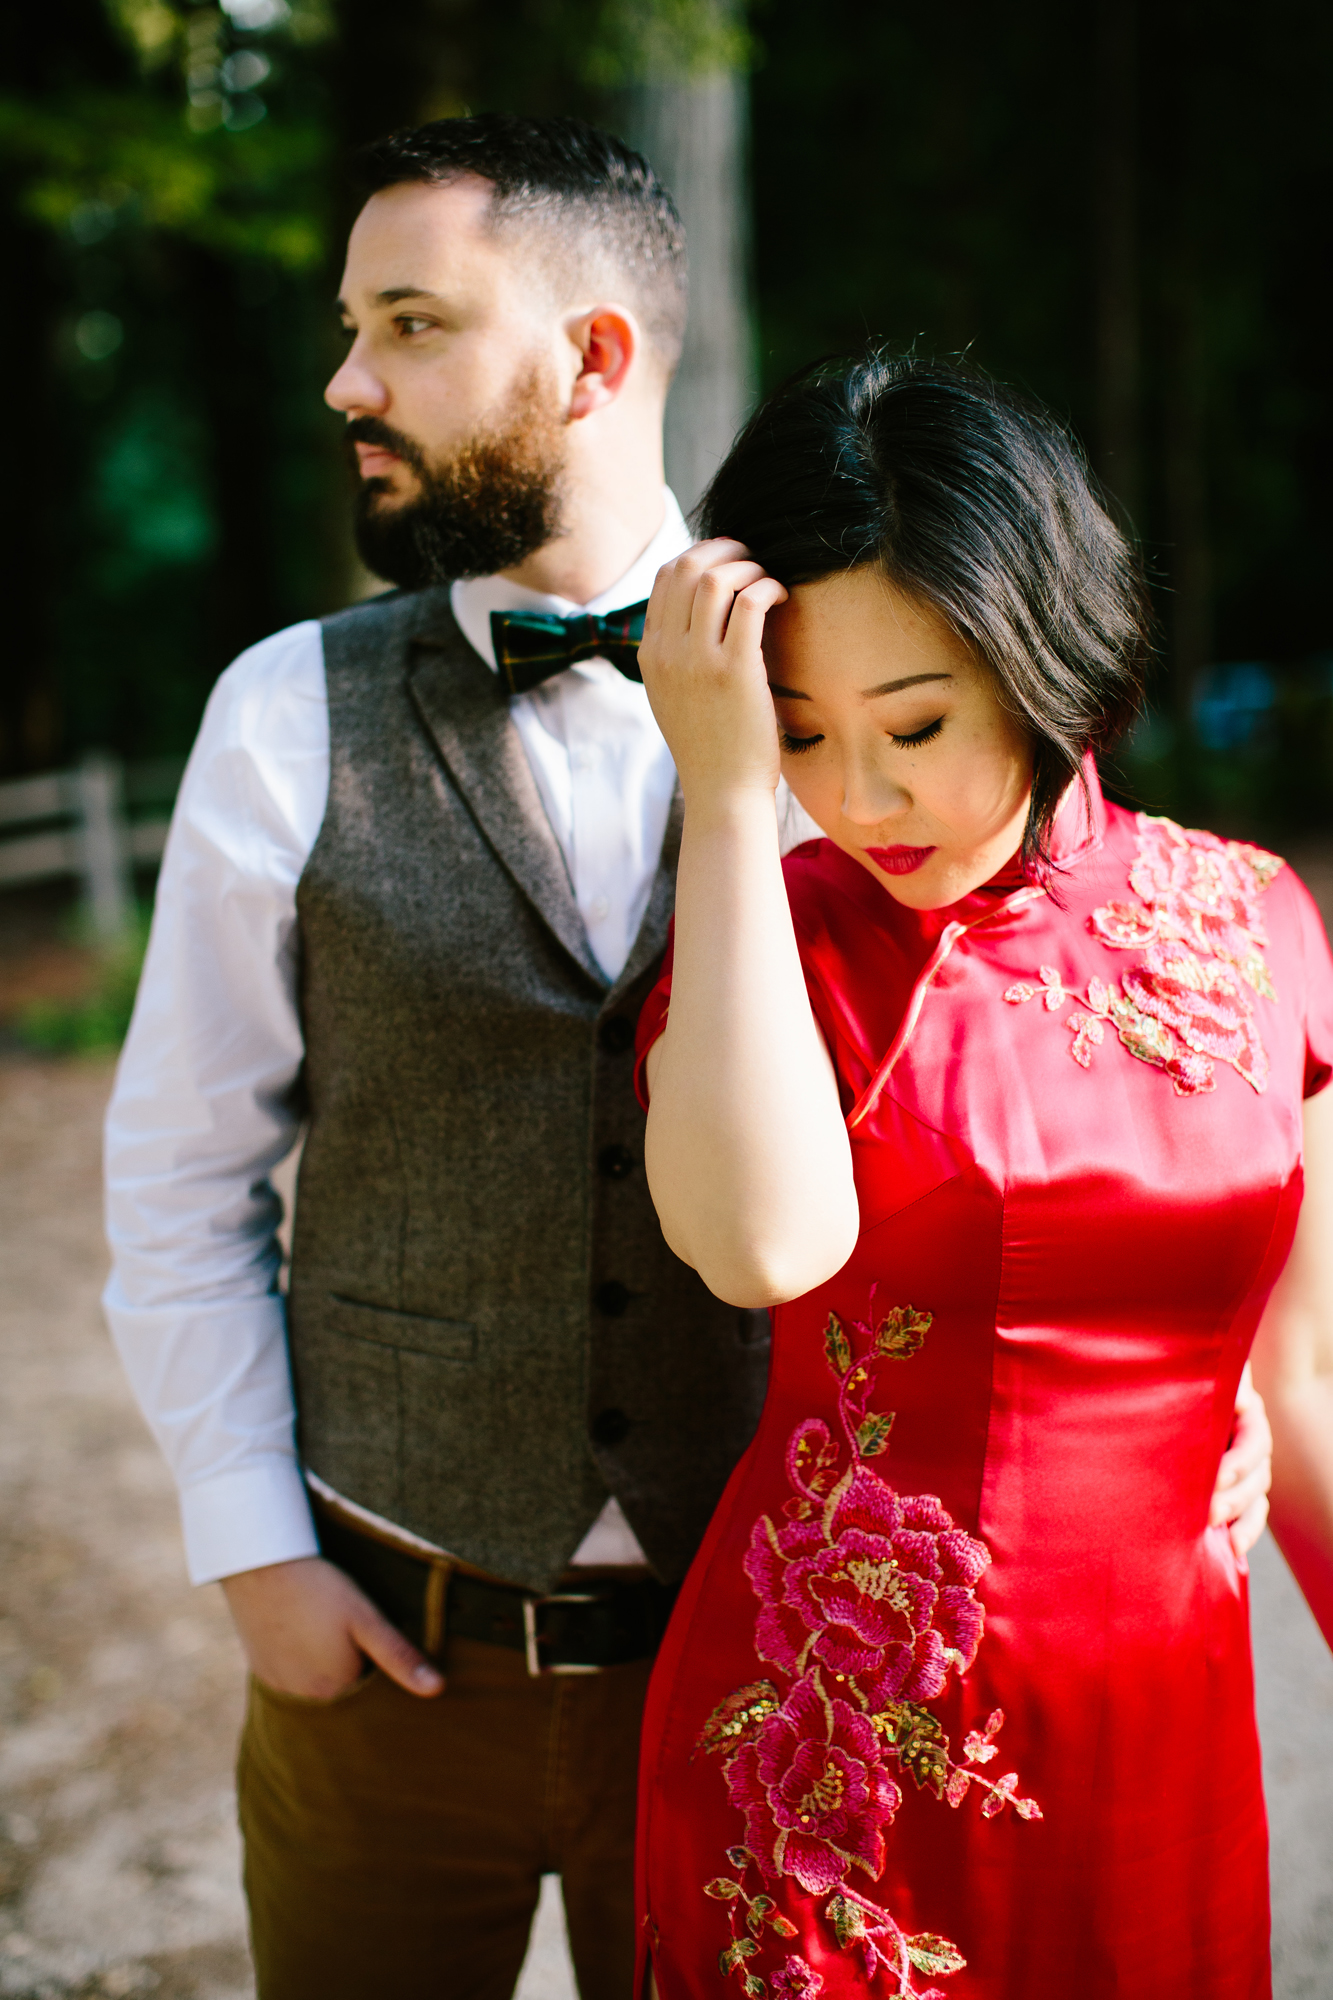 Red wedding gown in the redwood trees